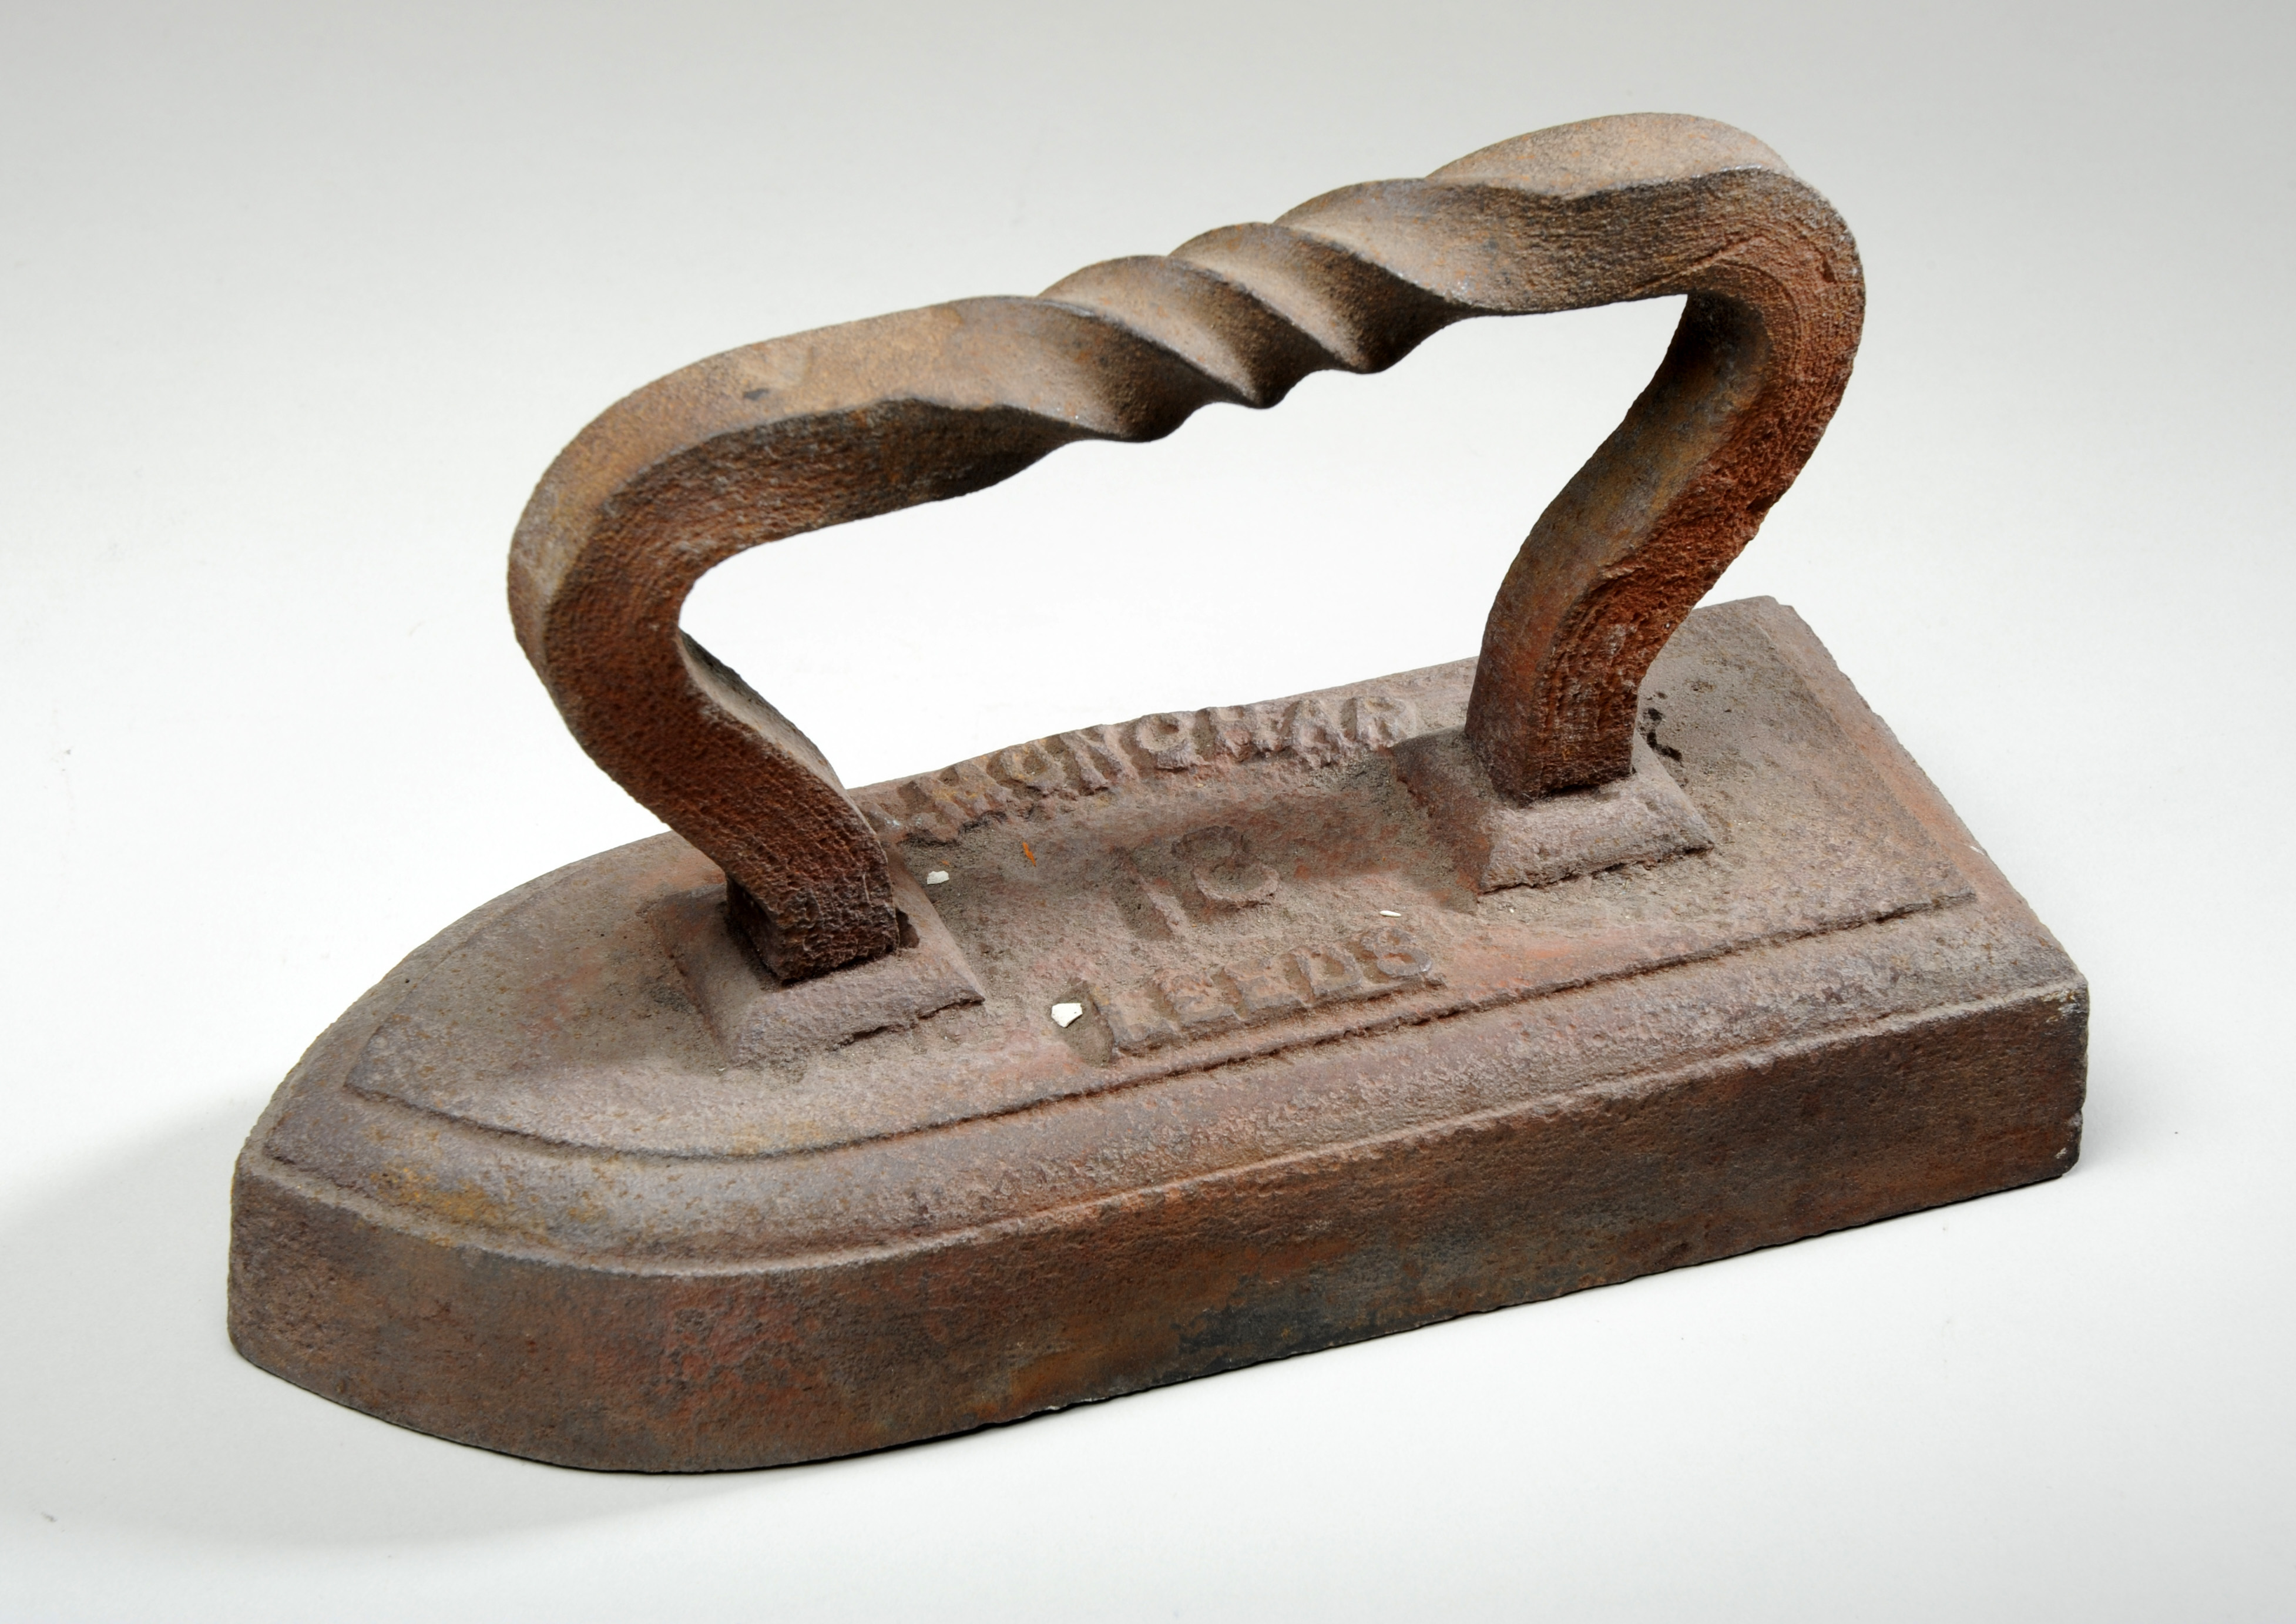 Solid metal iron with a twisted metal handle